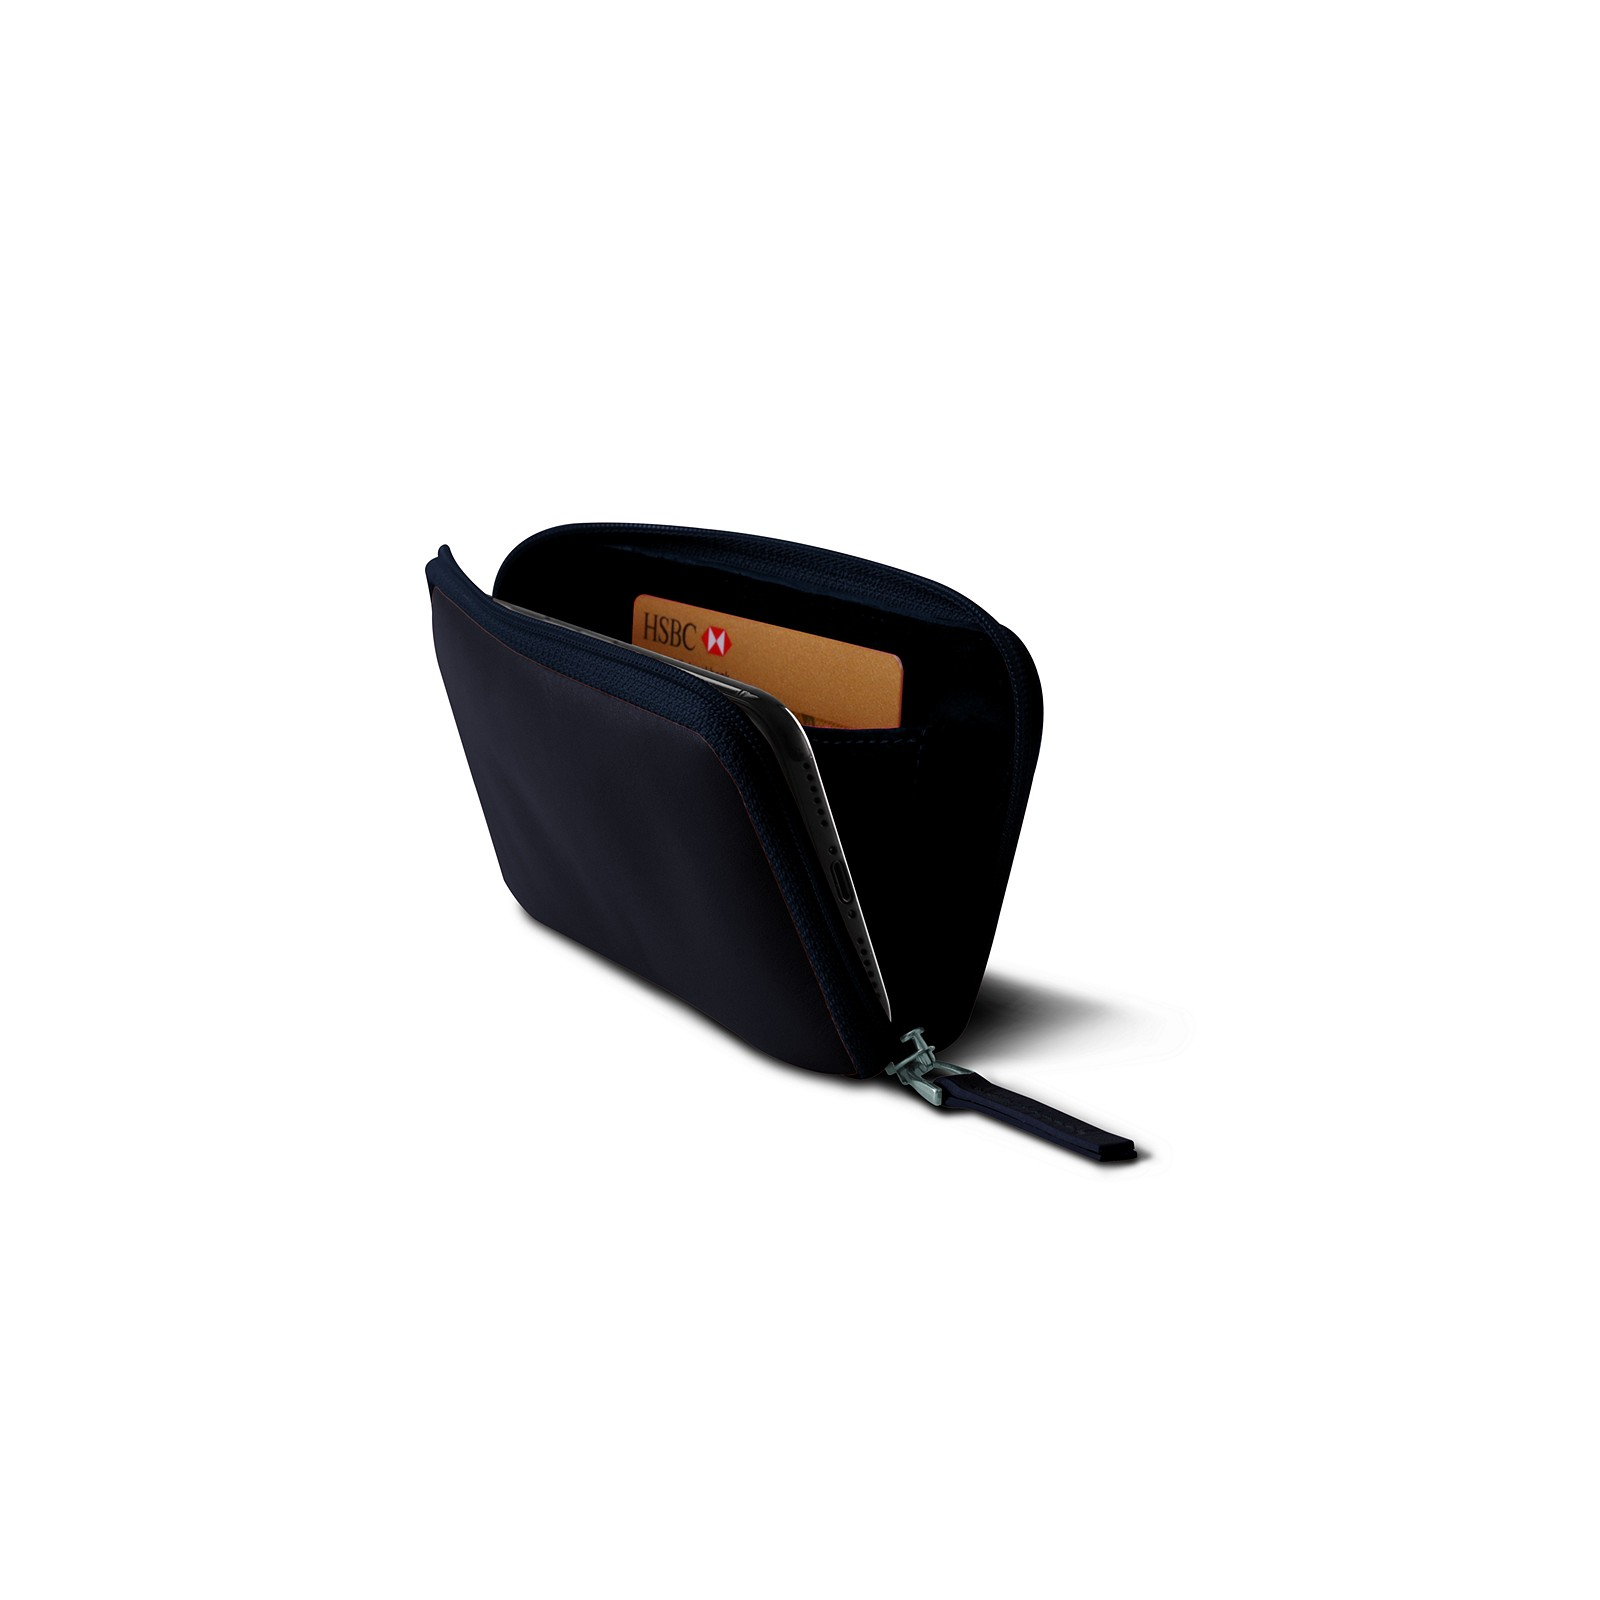 timeless design 1b6b8 9cd18 Zipped pouch for iPhone X